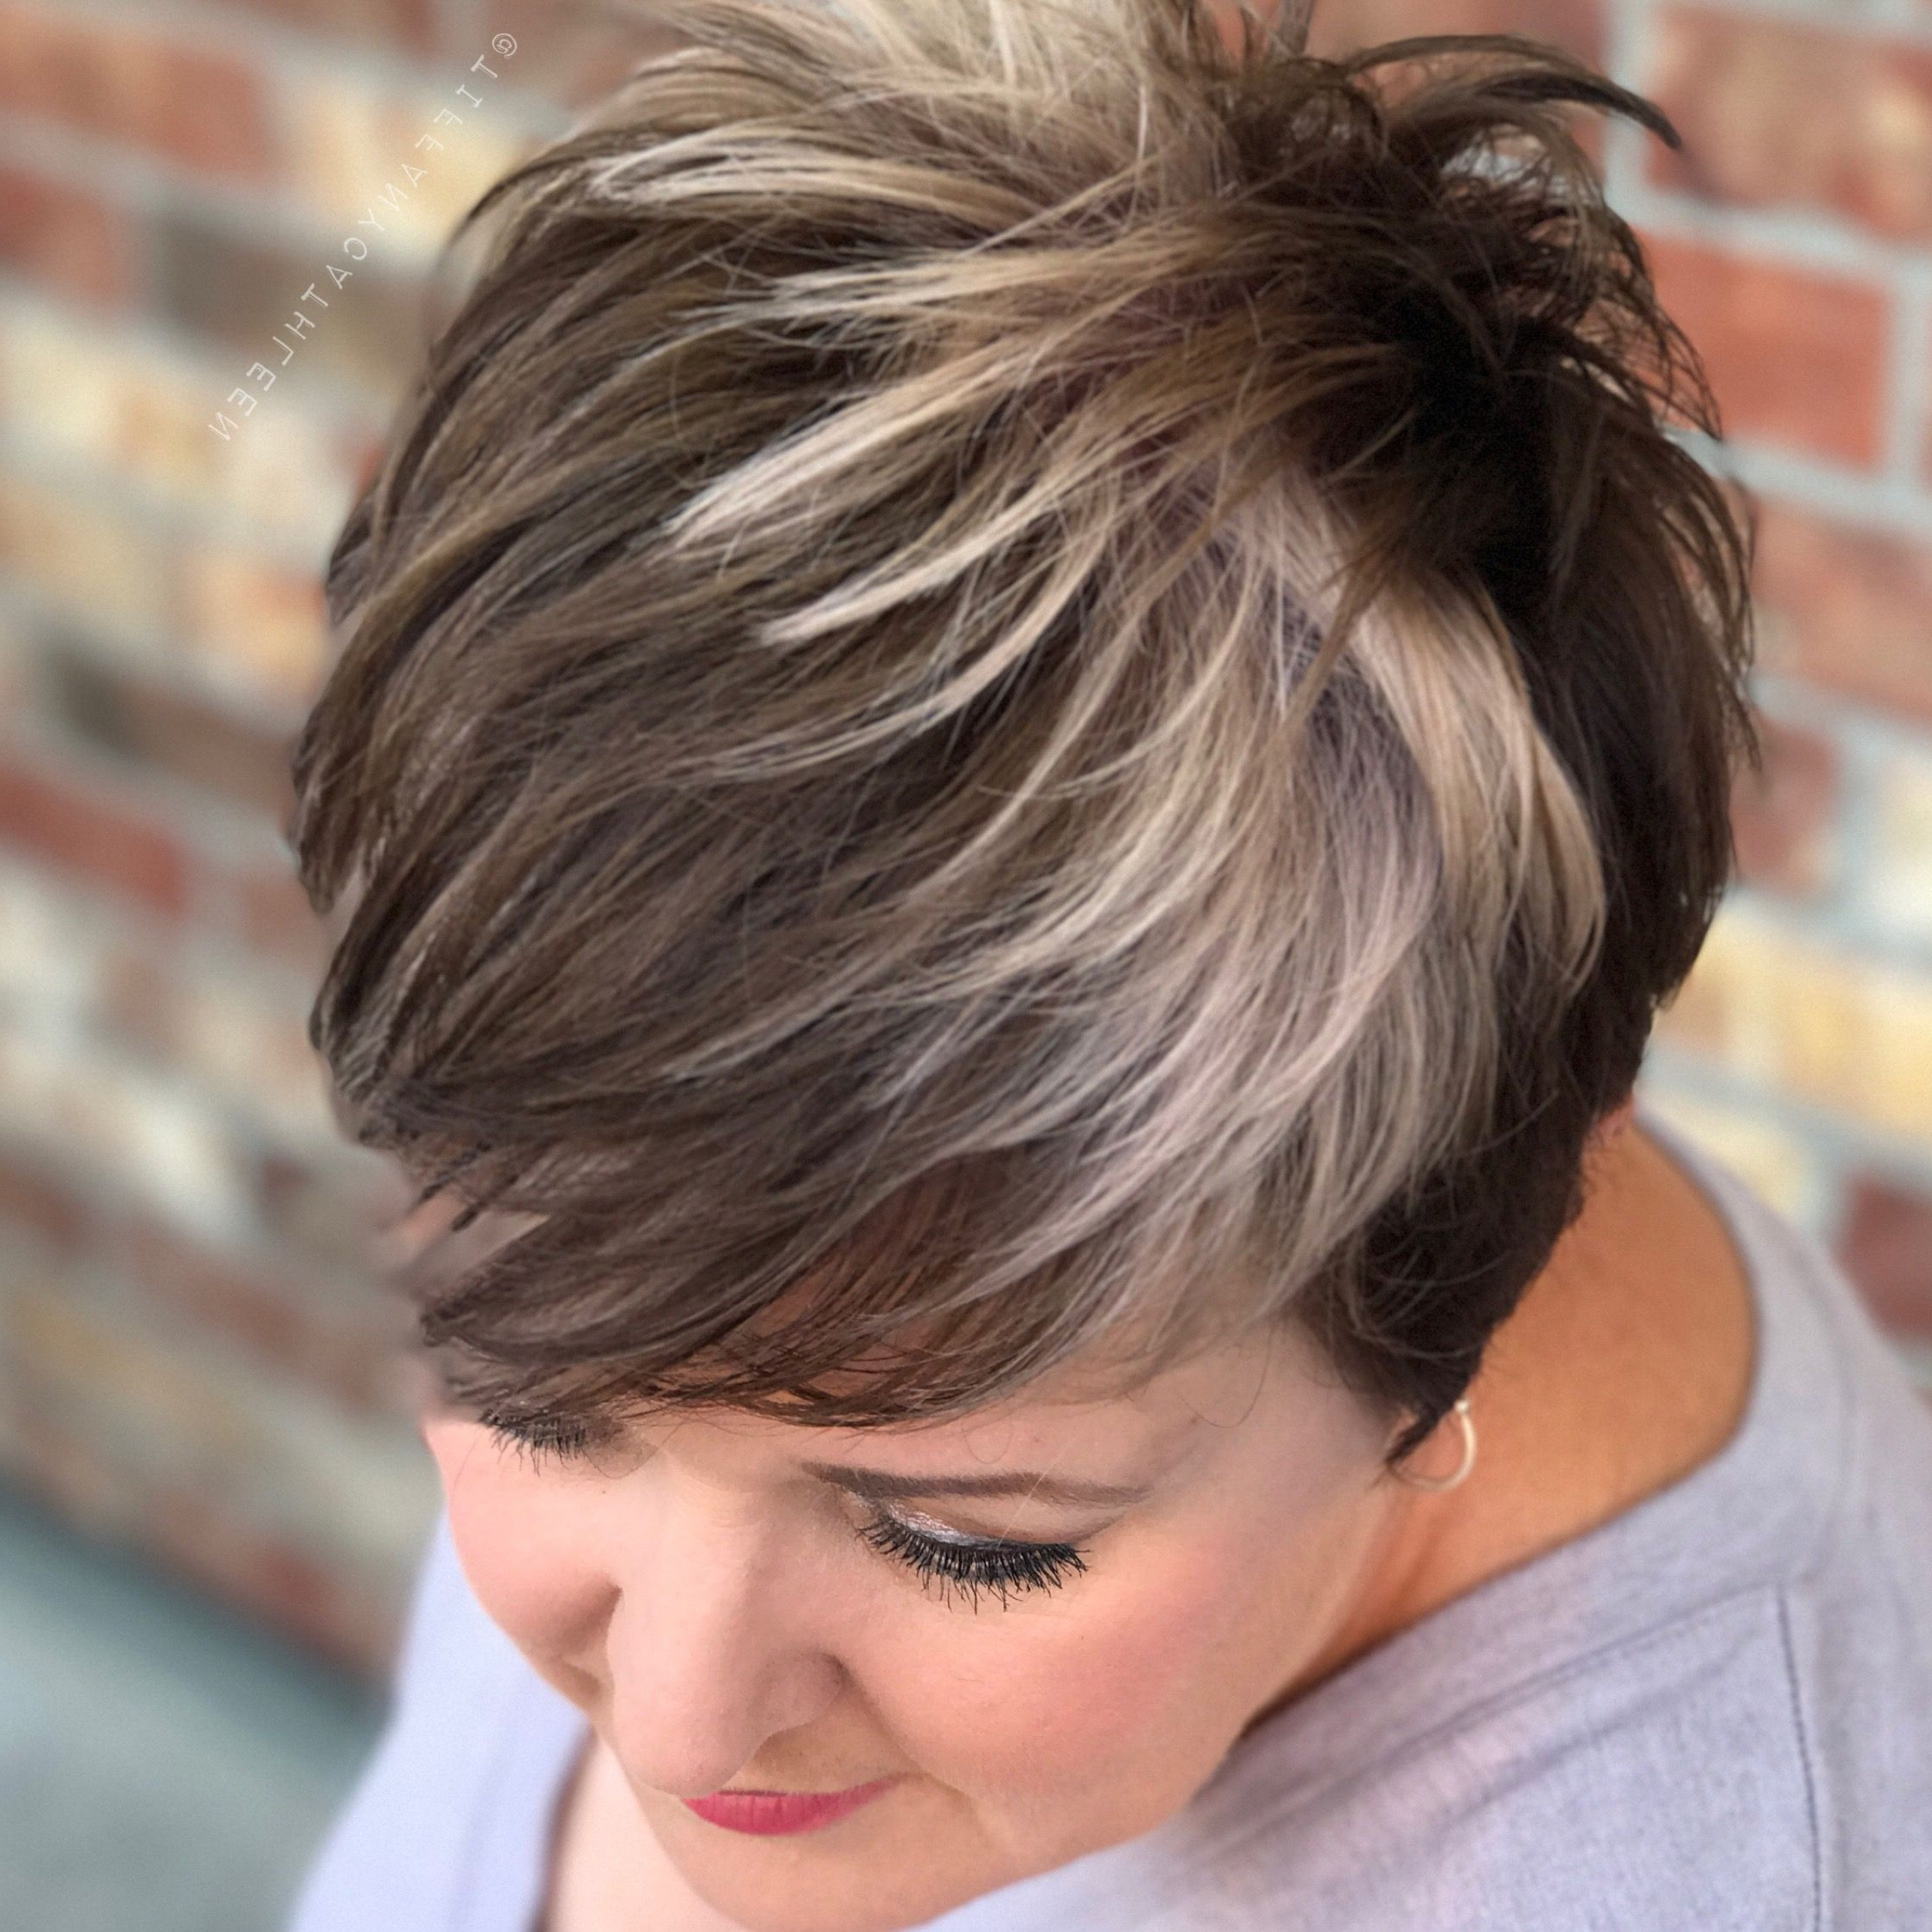 Pin On My Hairstyles Regarding Long Pixie Haircuts With Sharp Layers And Highlights (View 19 of 20)